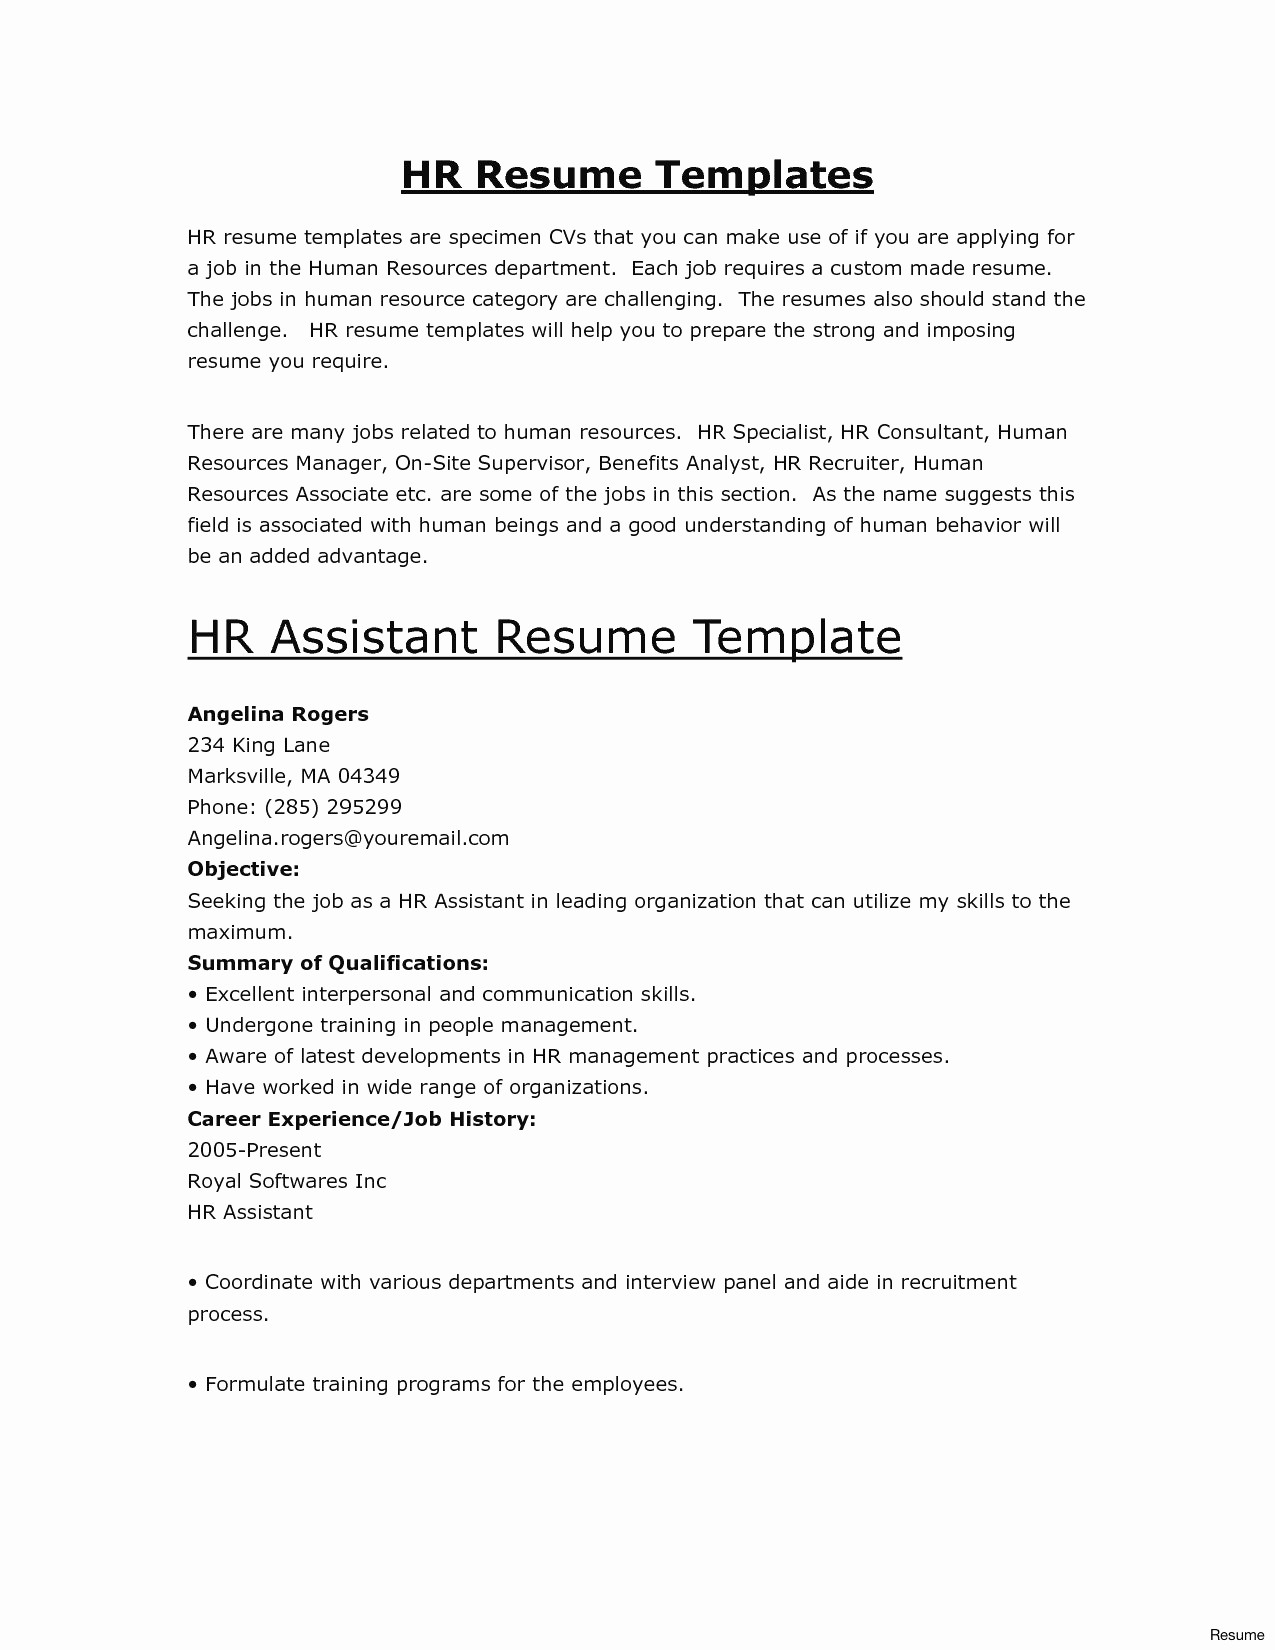 free employment verification letter template Collection-free word resume template awesome free resume template builder inspirational od specialist sample of free word 16-i